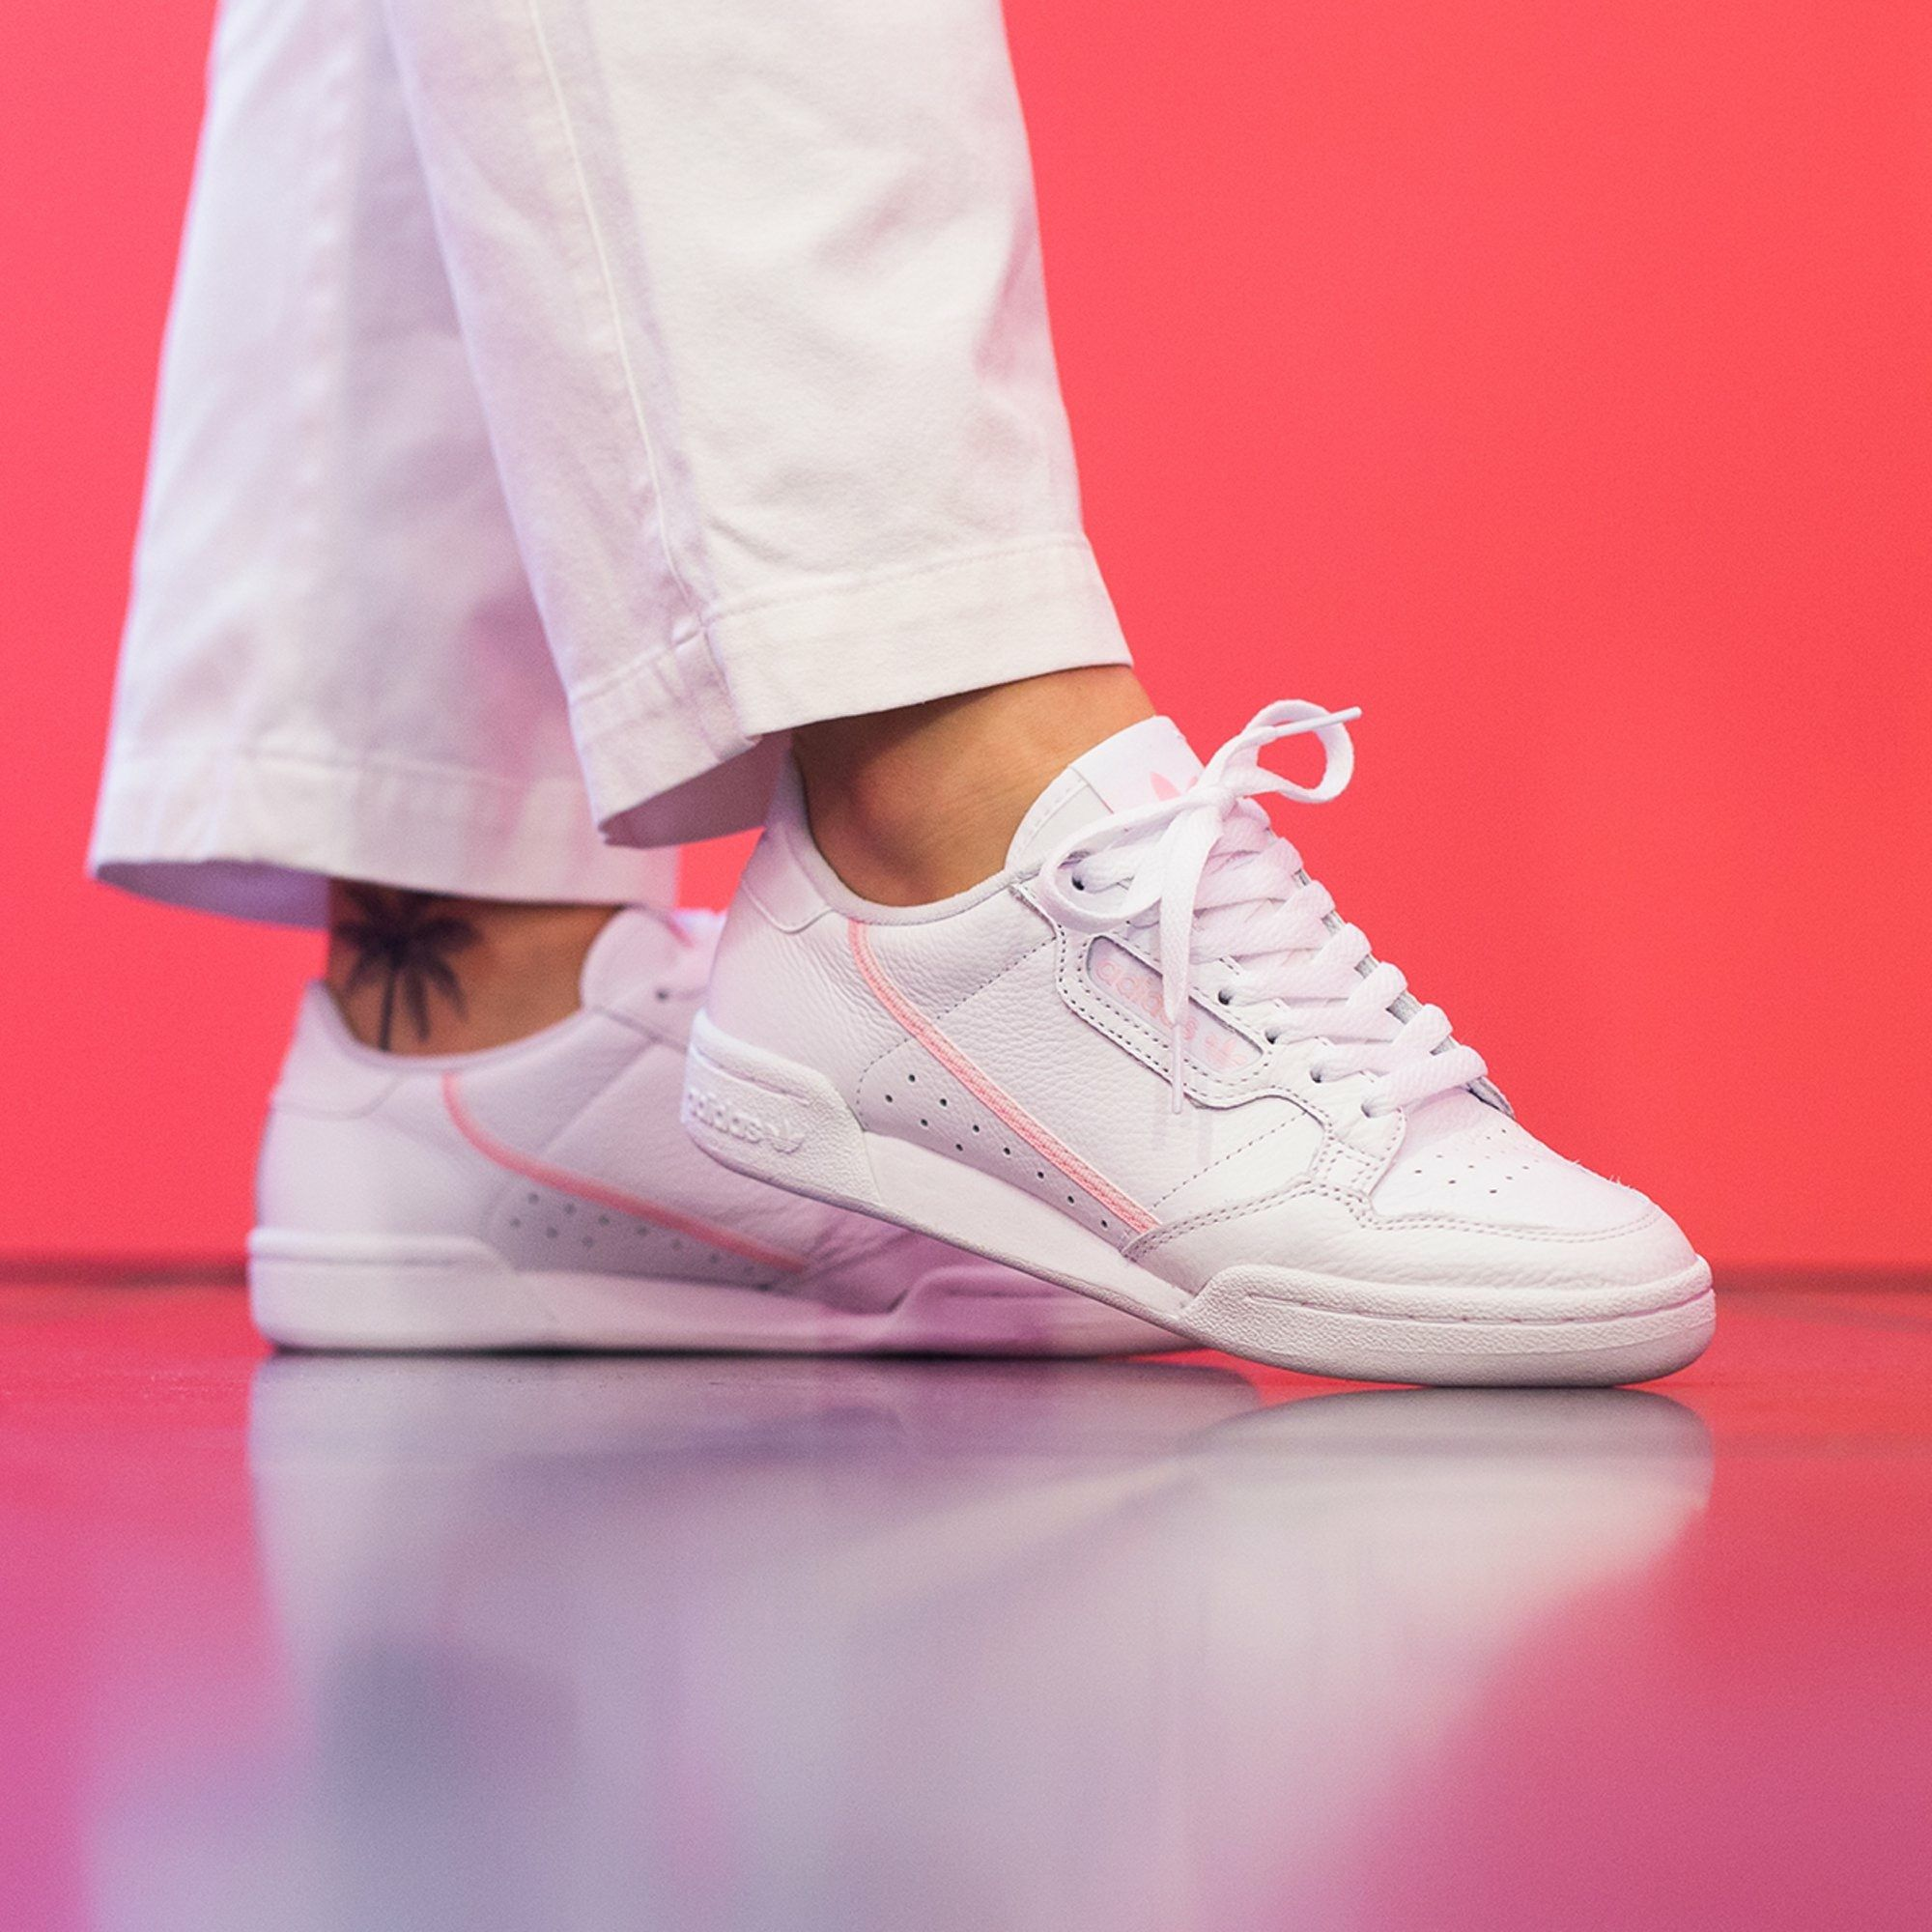 adidas Originals Continental 80 | Pink leather shoes, Adidas